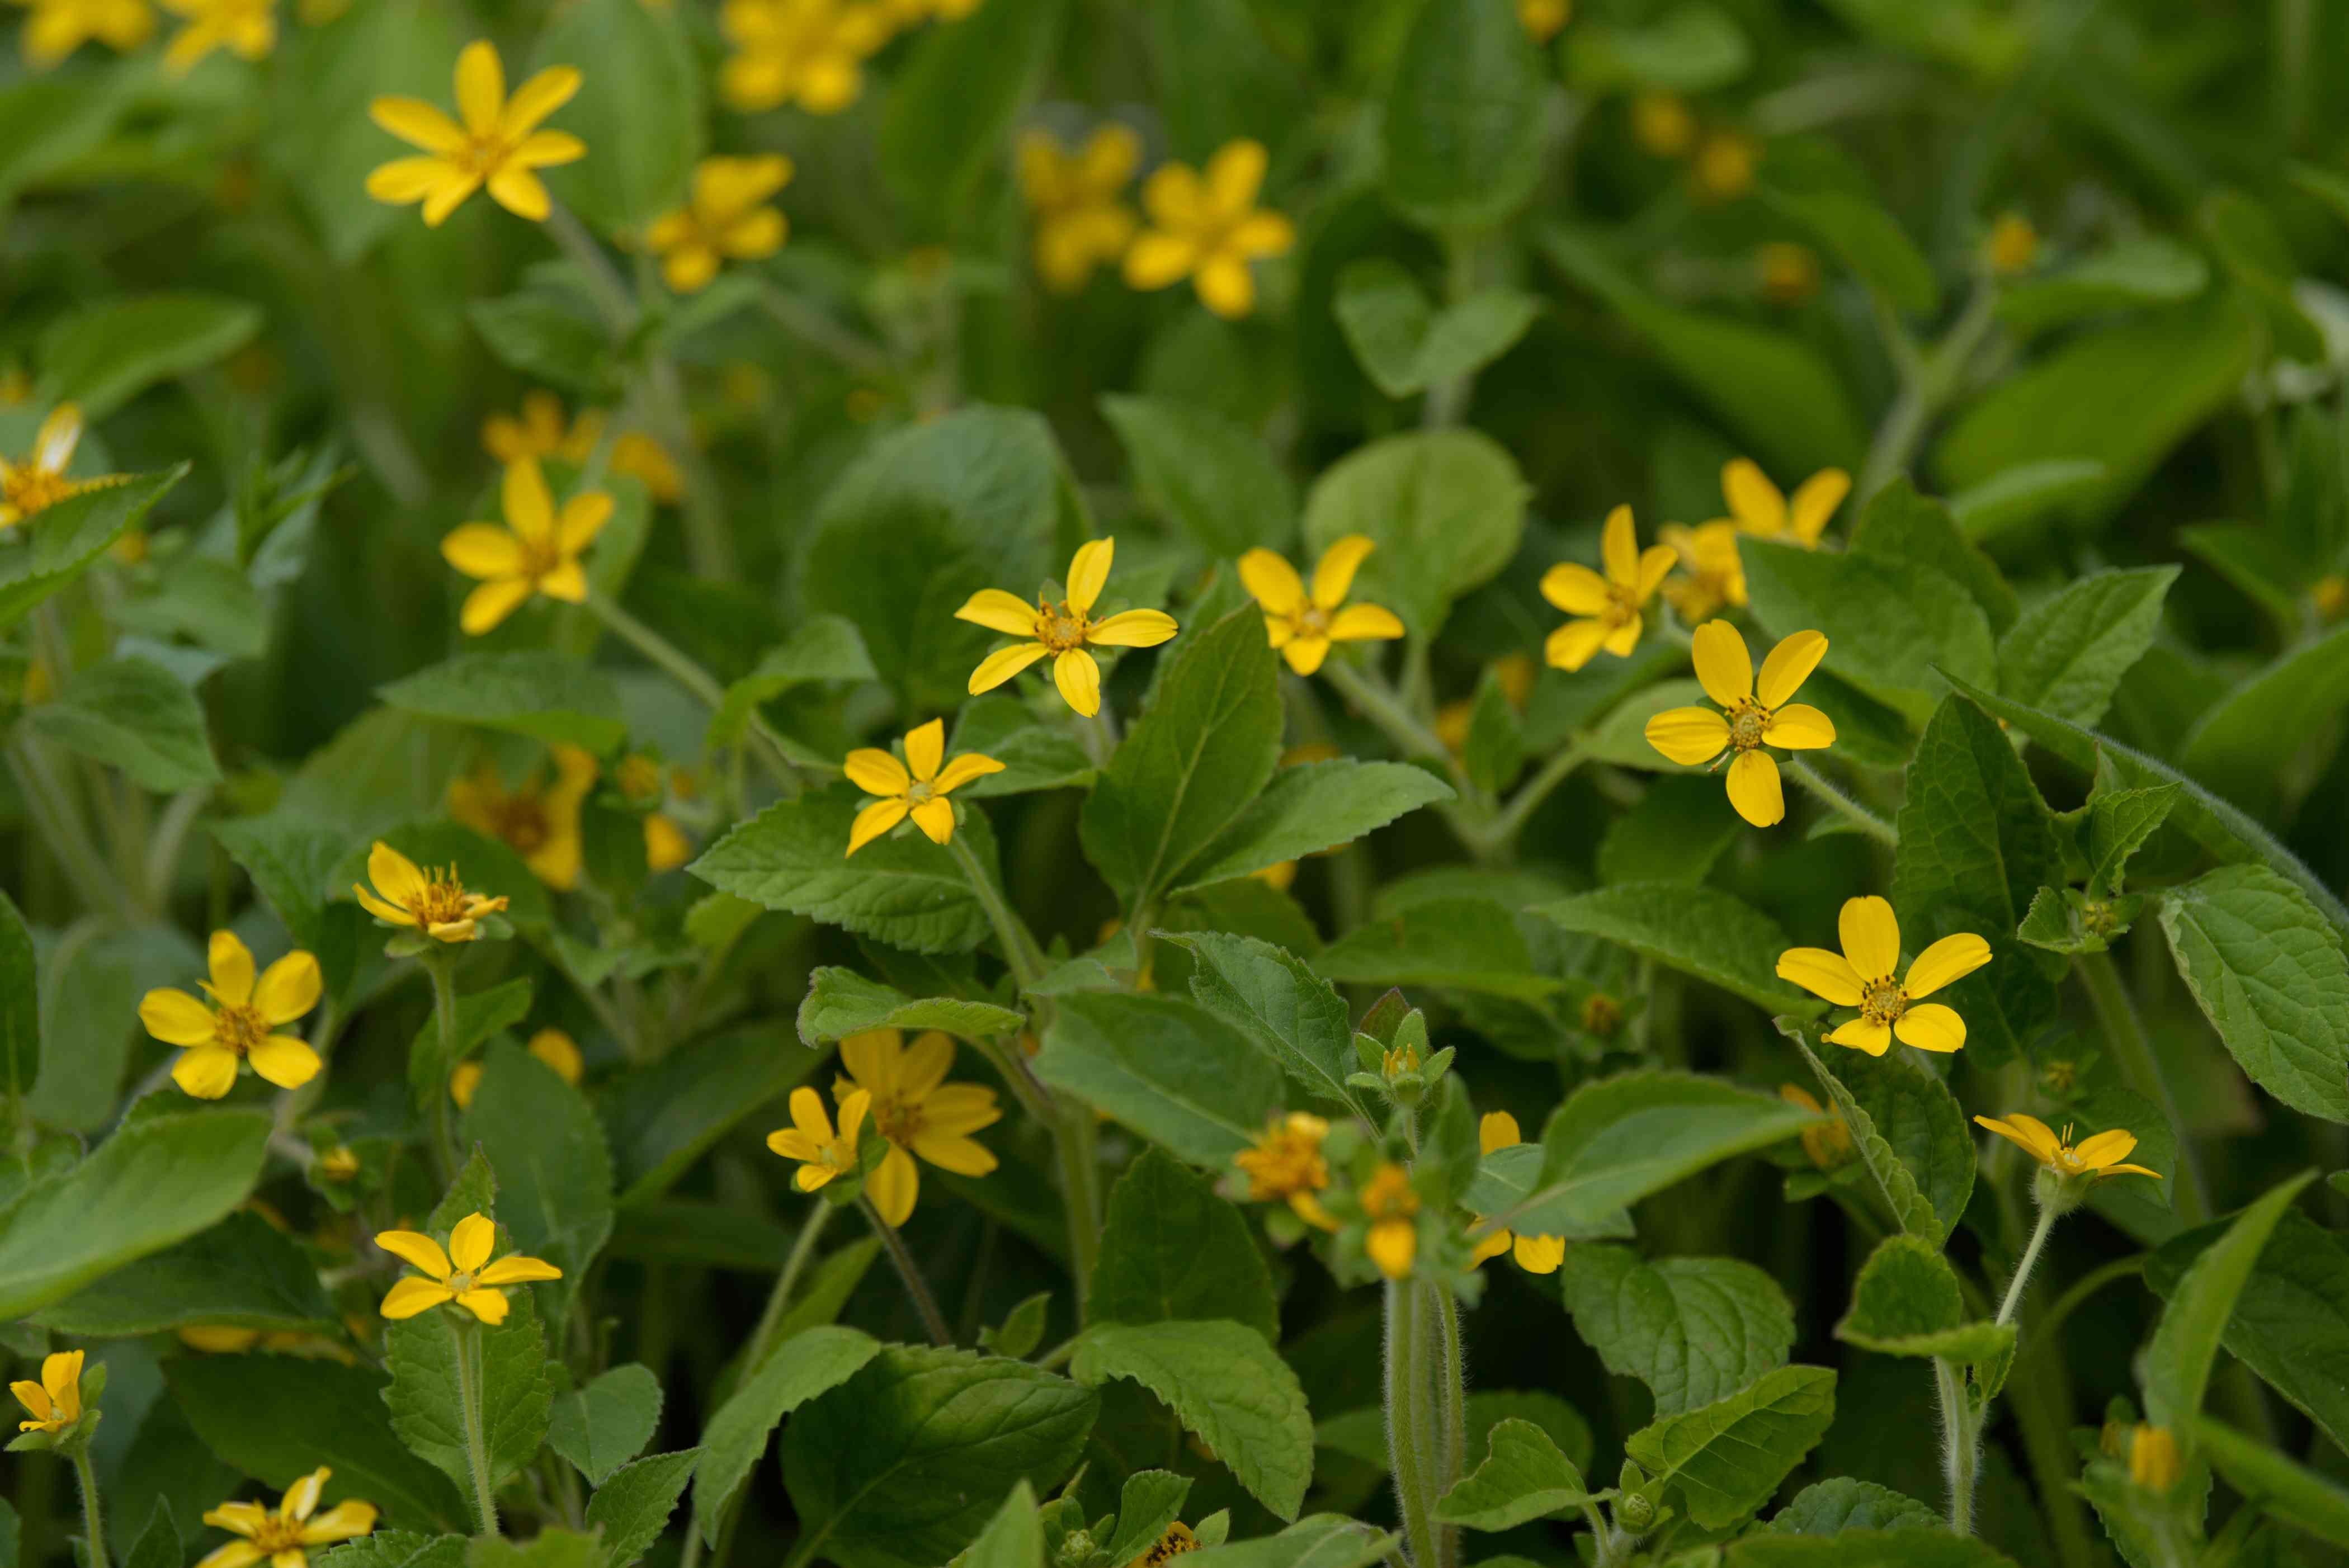 Goldenstar plant with small yellow star-shaped flowers mixed with leaves